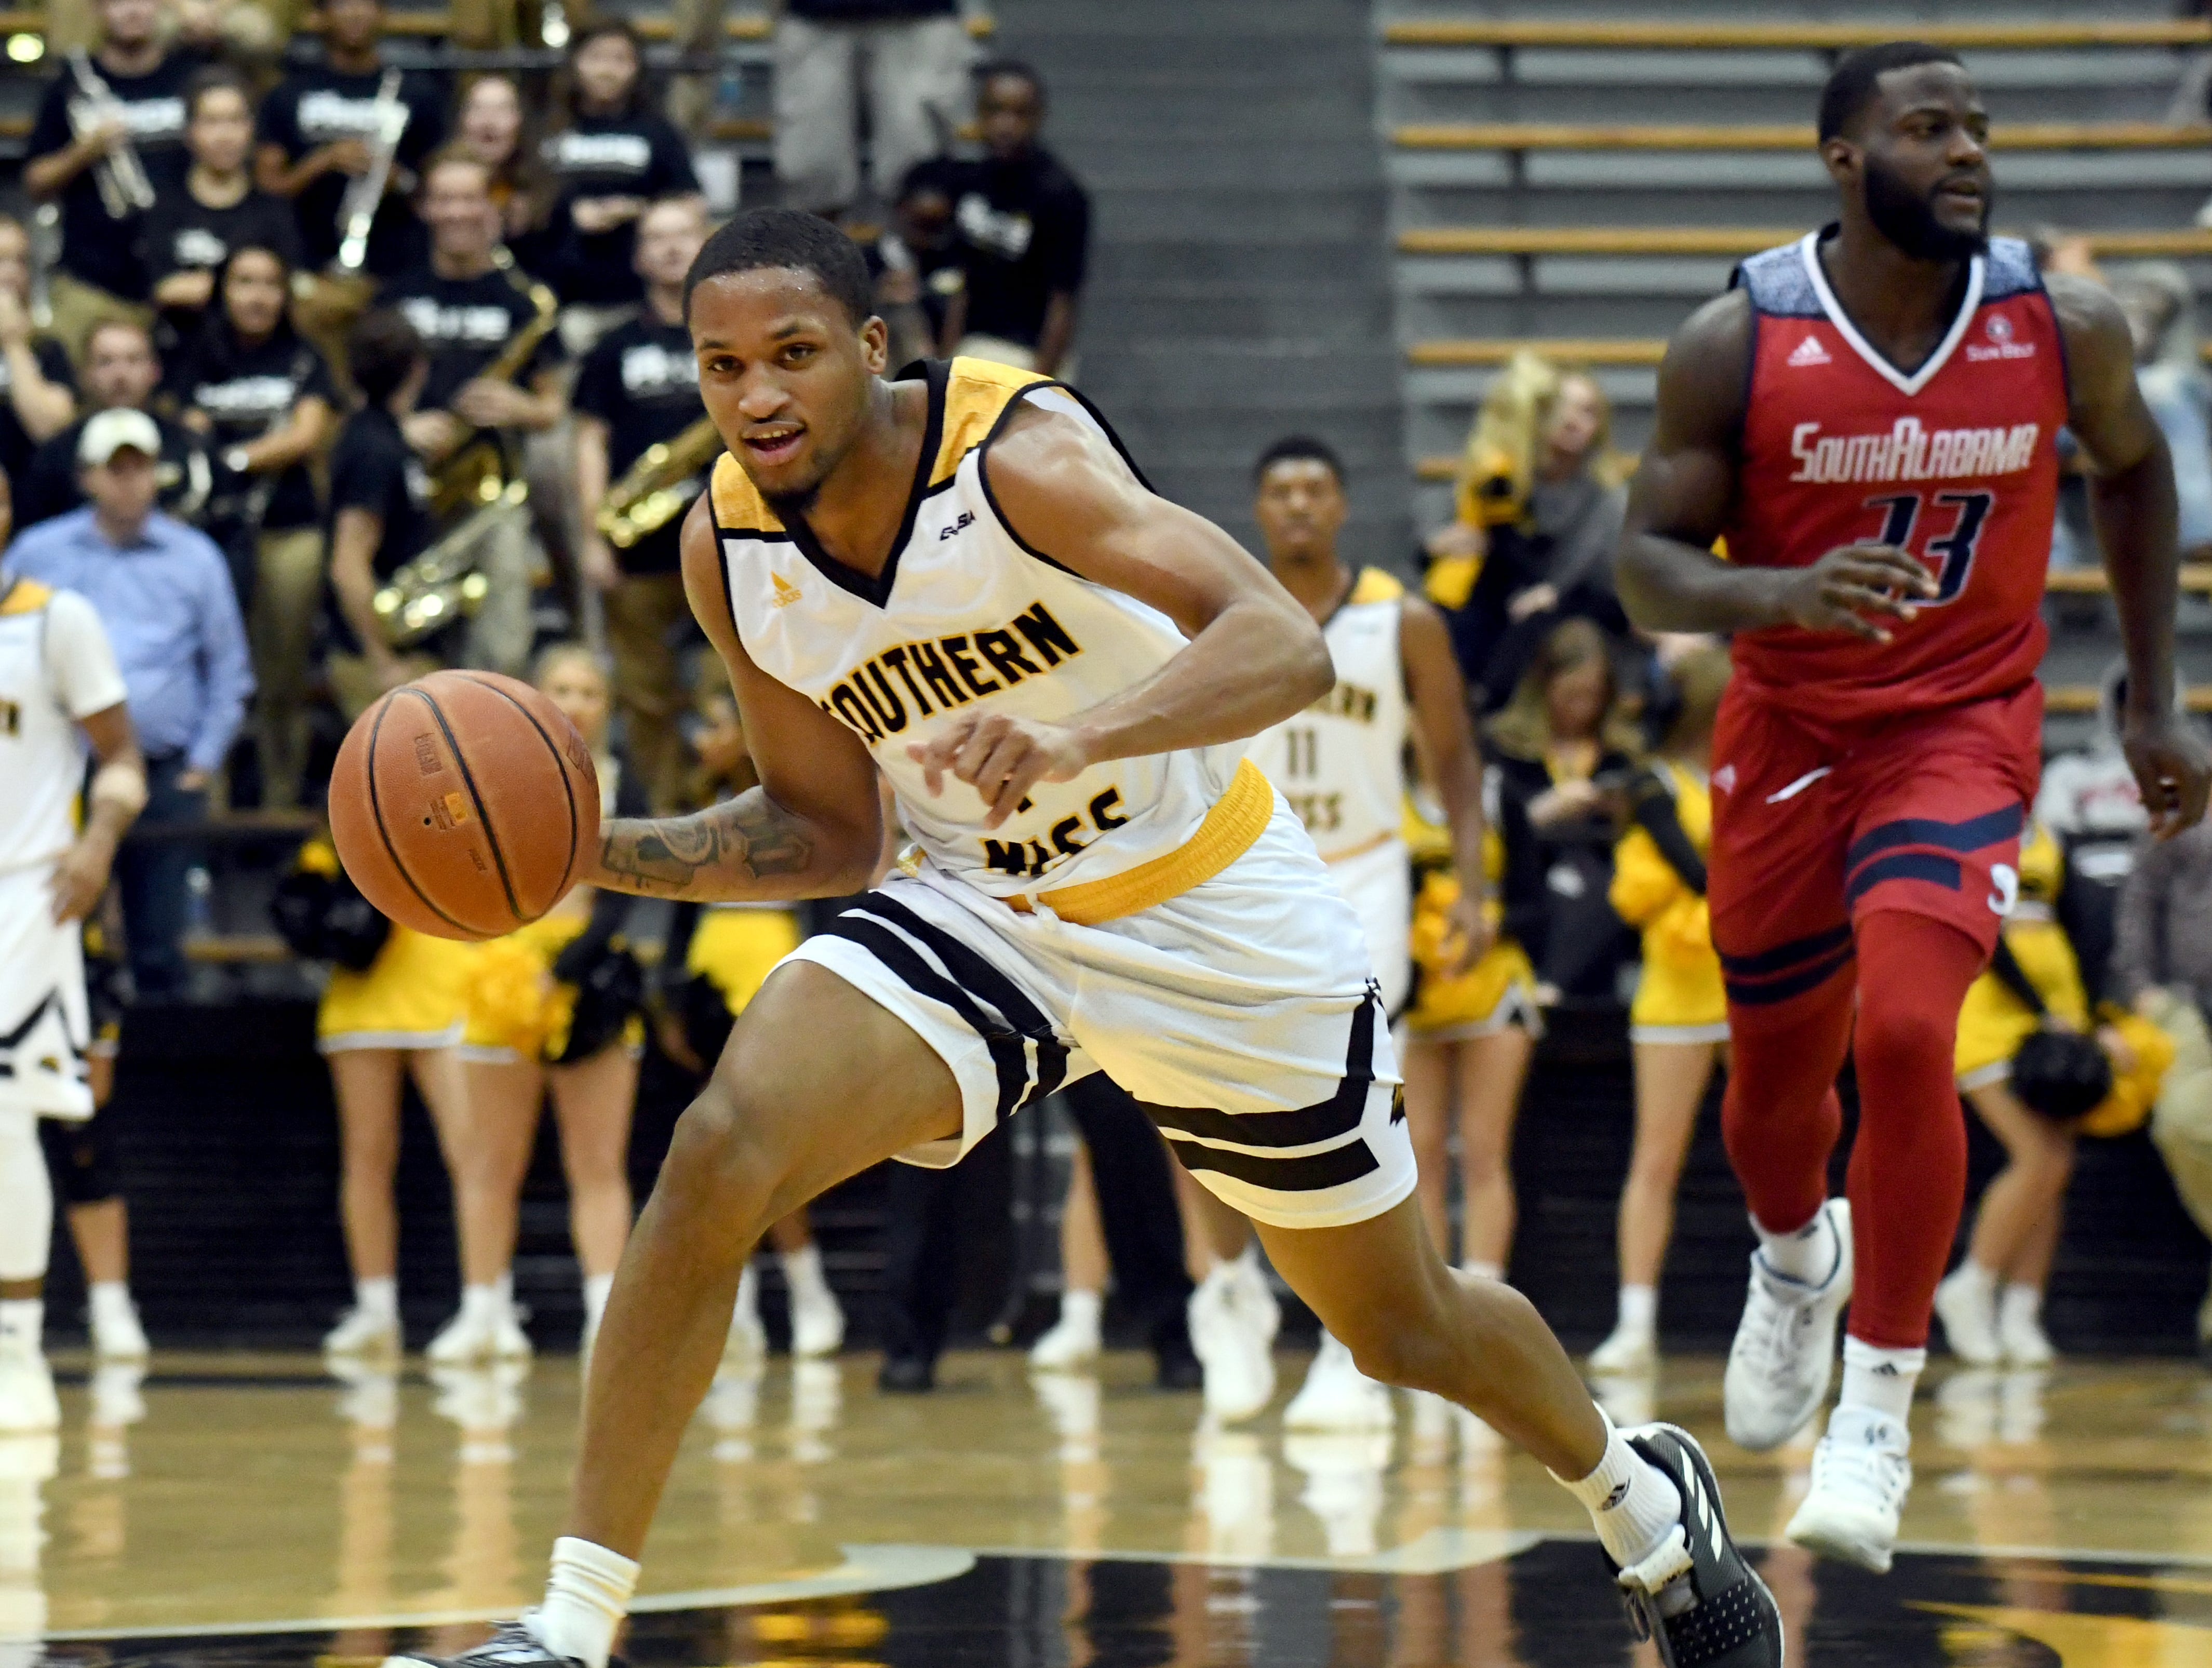 Southern Miss guard Cortez Edwards steals the ball in a game against South Alabama in Reed Green Coliseum on Wednesday, November 28, 2018.